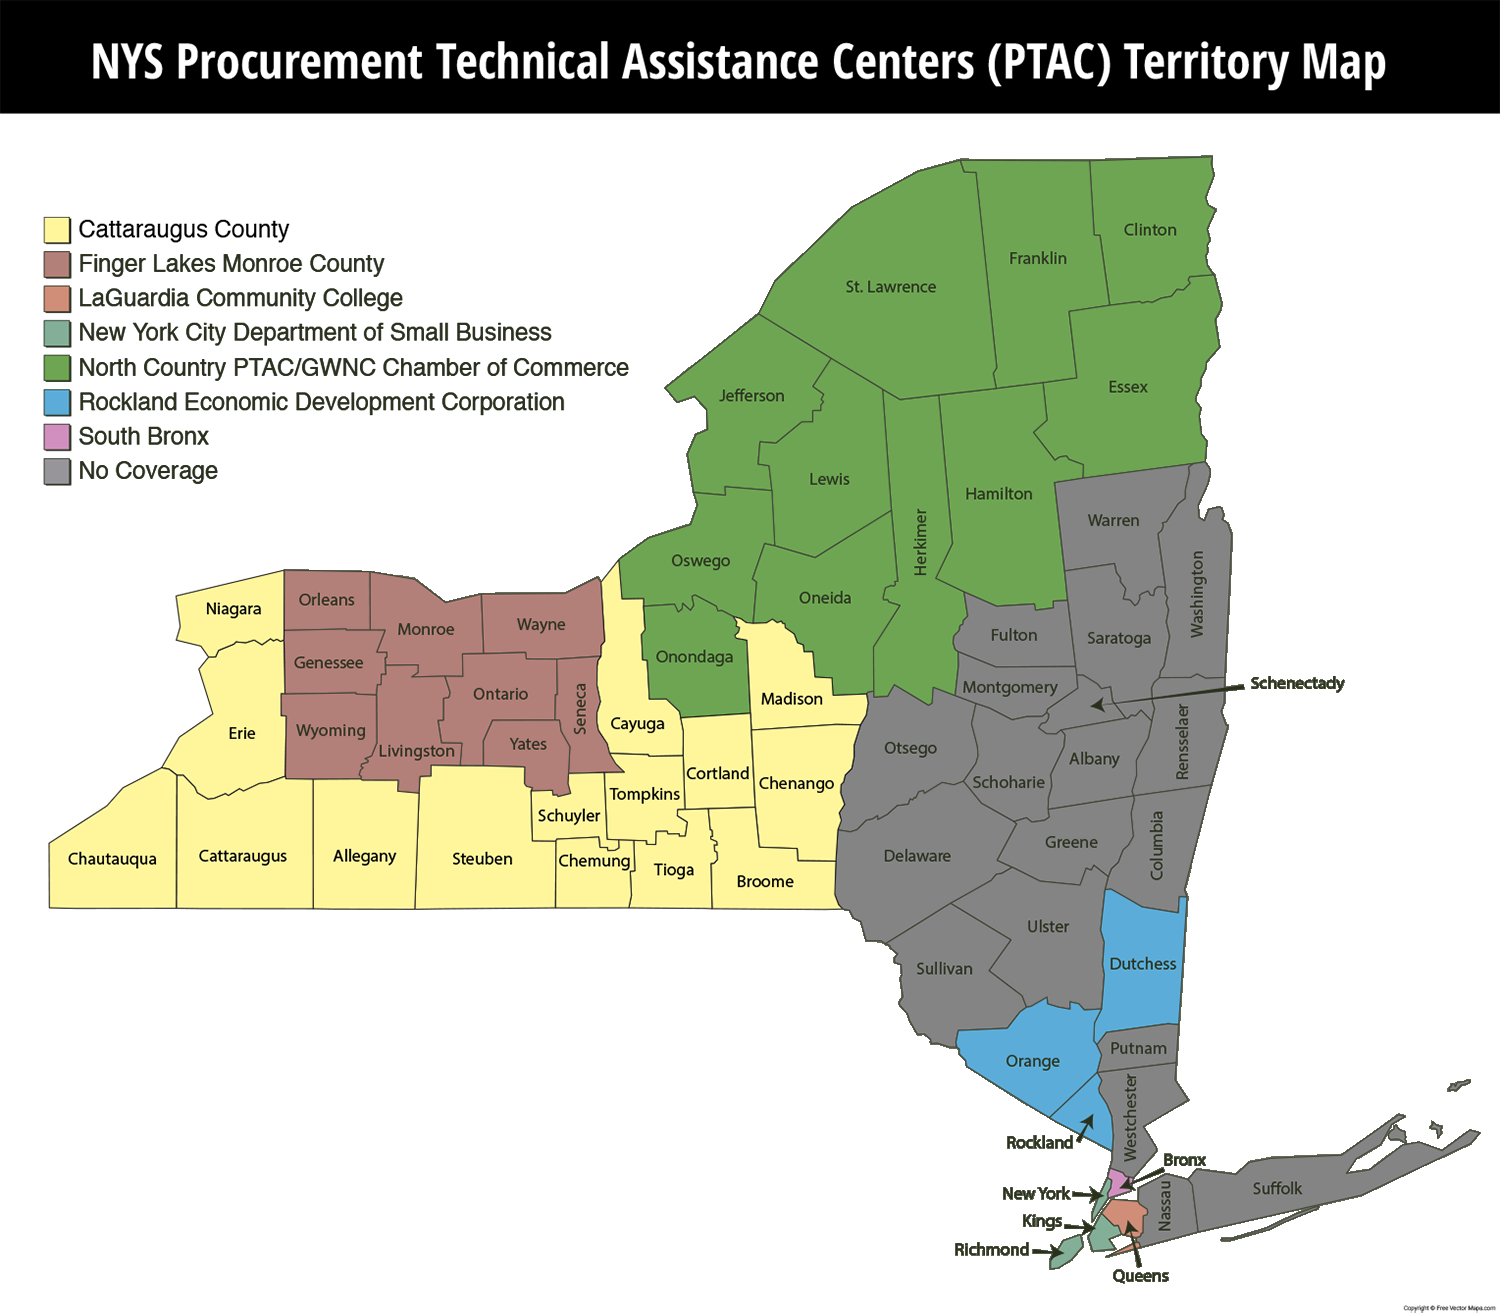 Catt.Co PTAC on the NYS PTAC Coverage Map